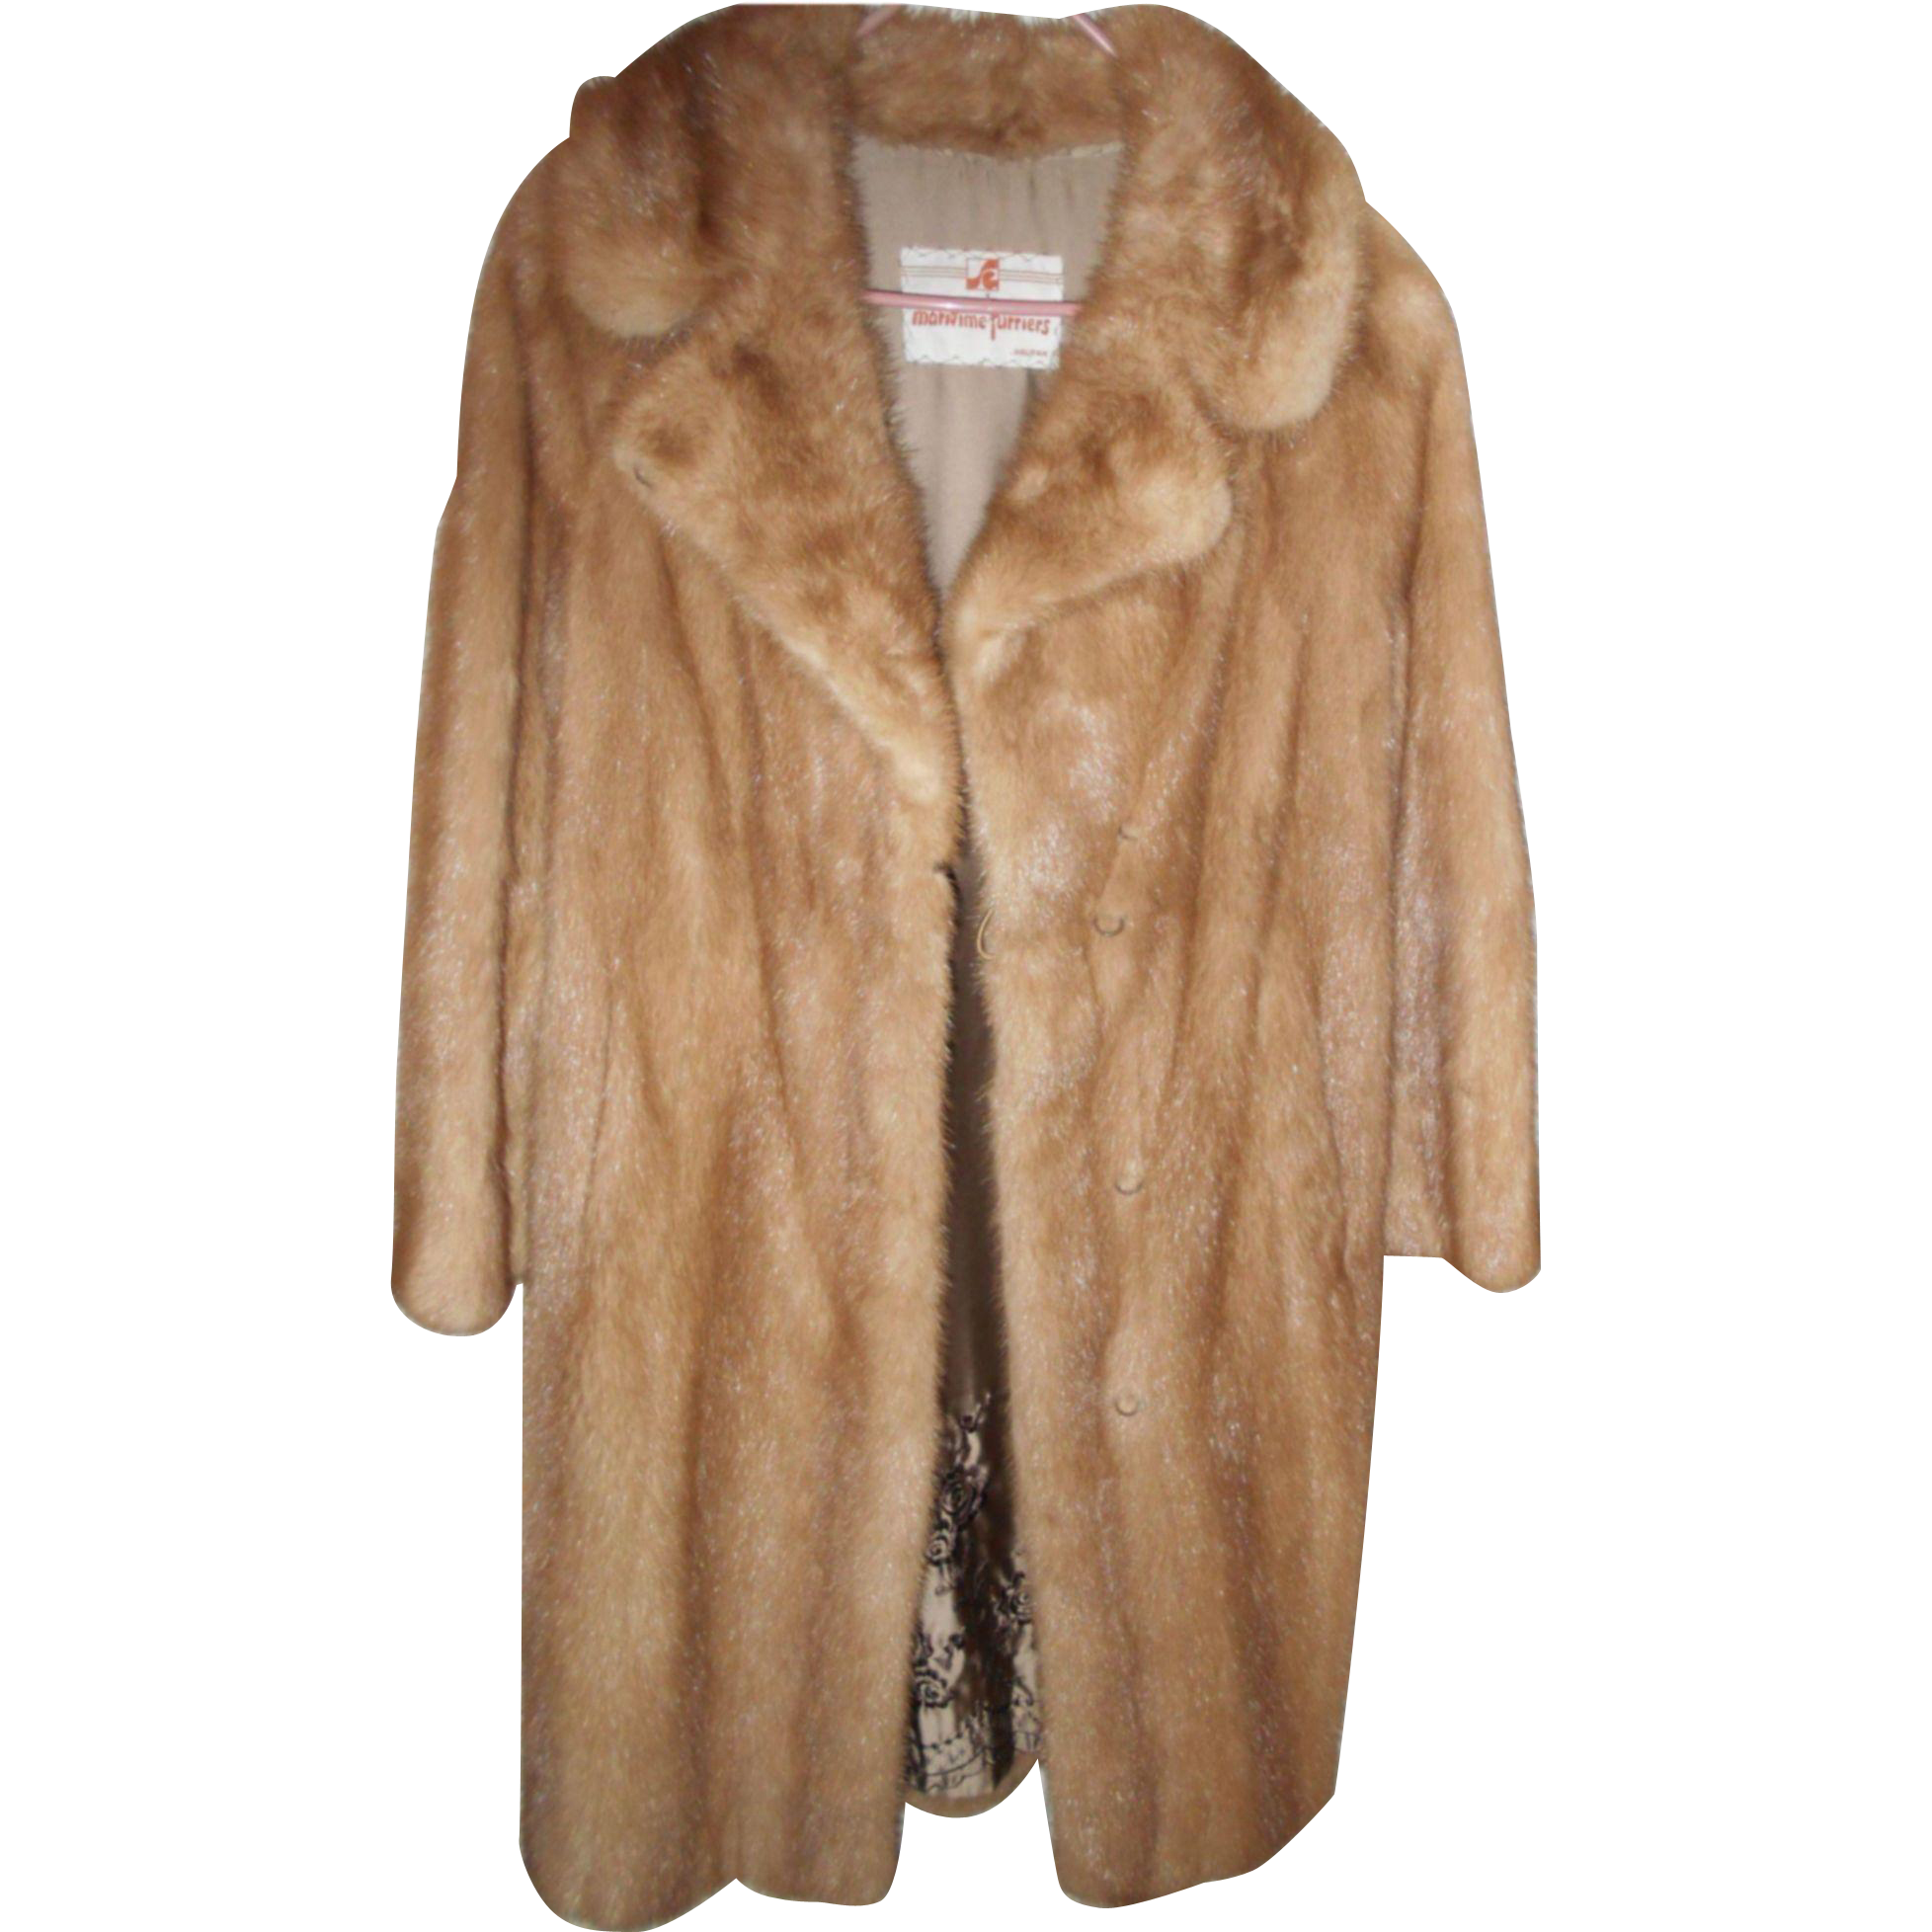 Stunning Vintage Mink Coat with Decorative Embroidered Lining ...